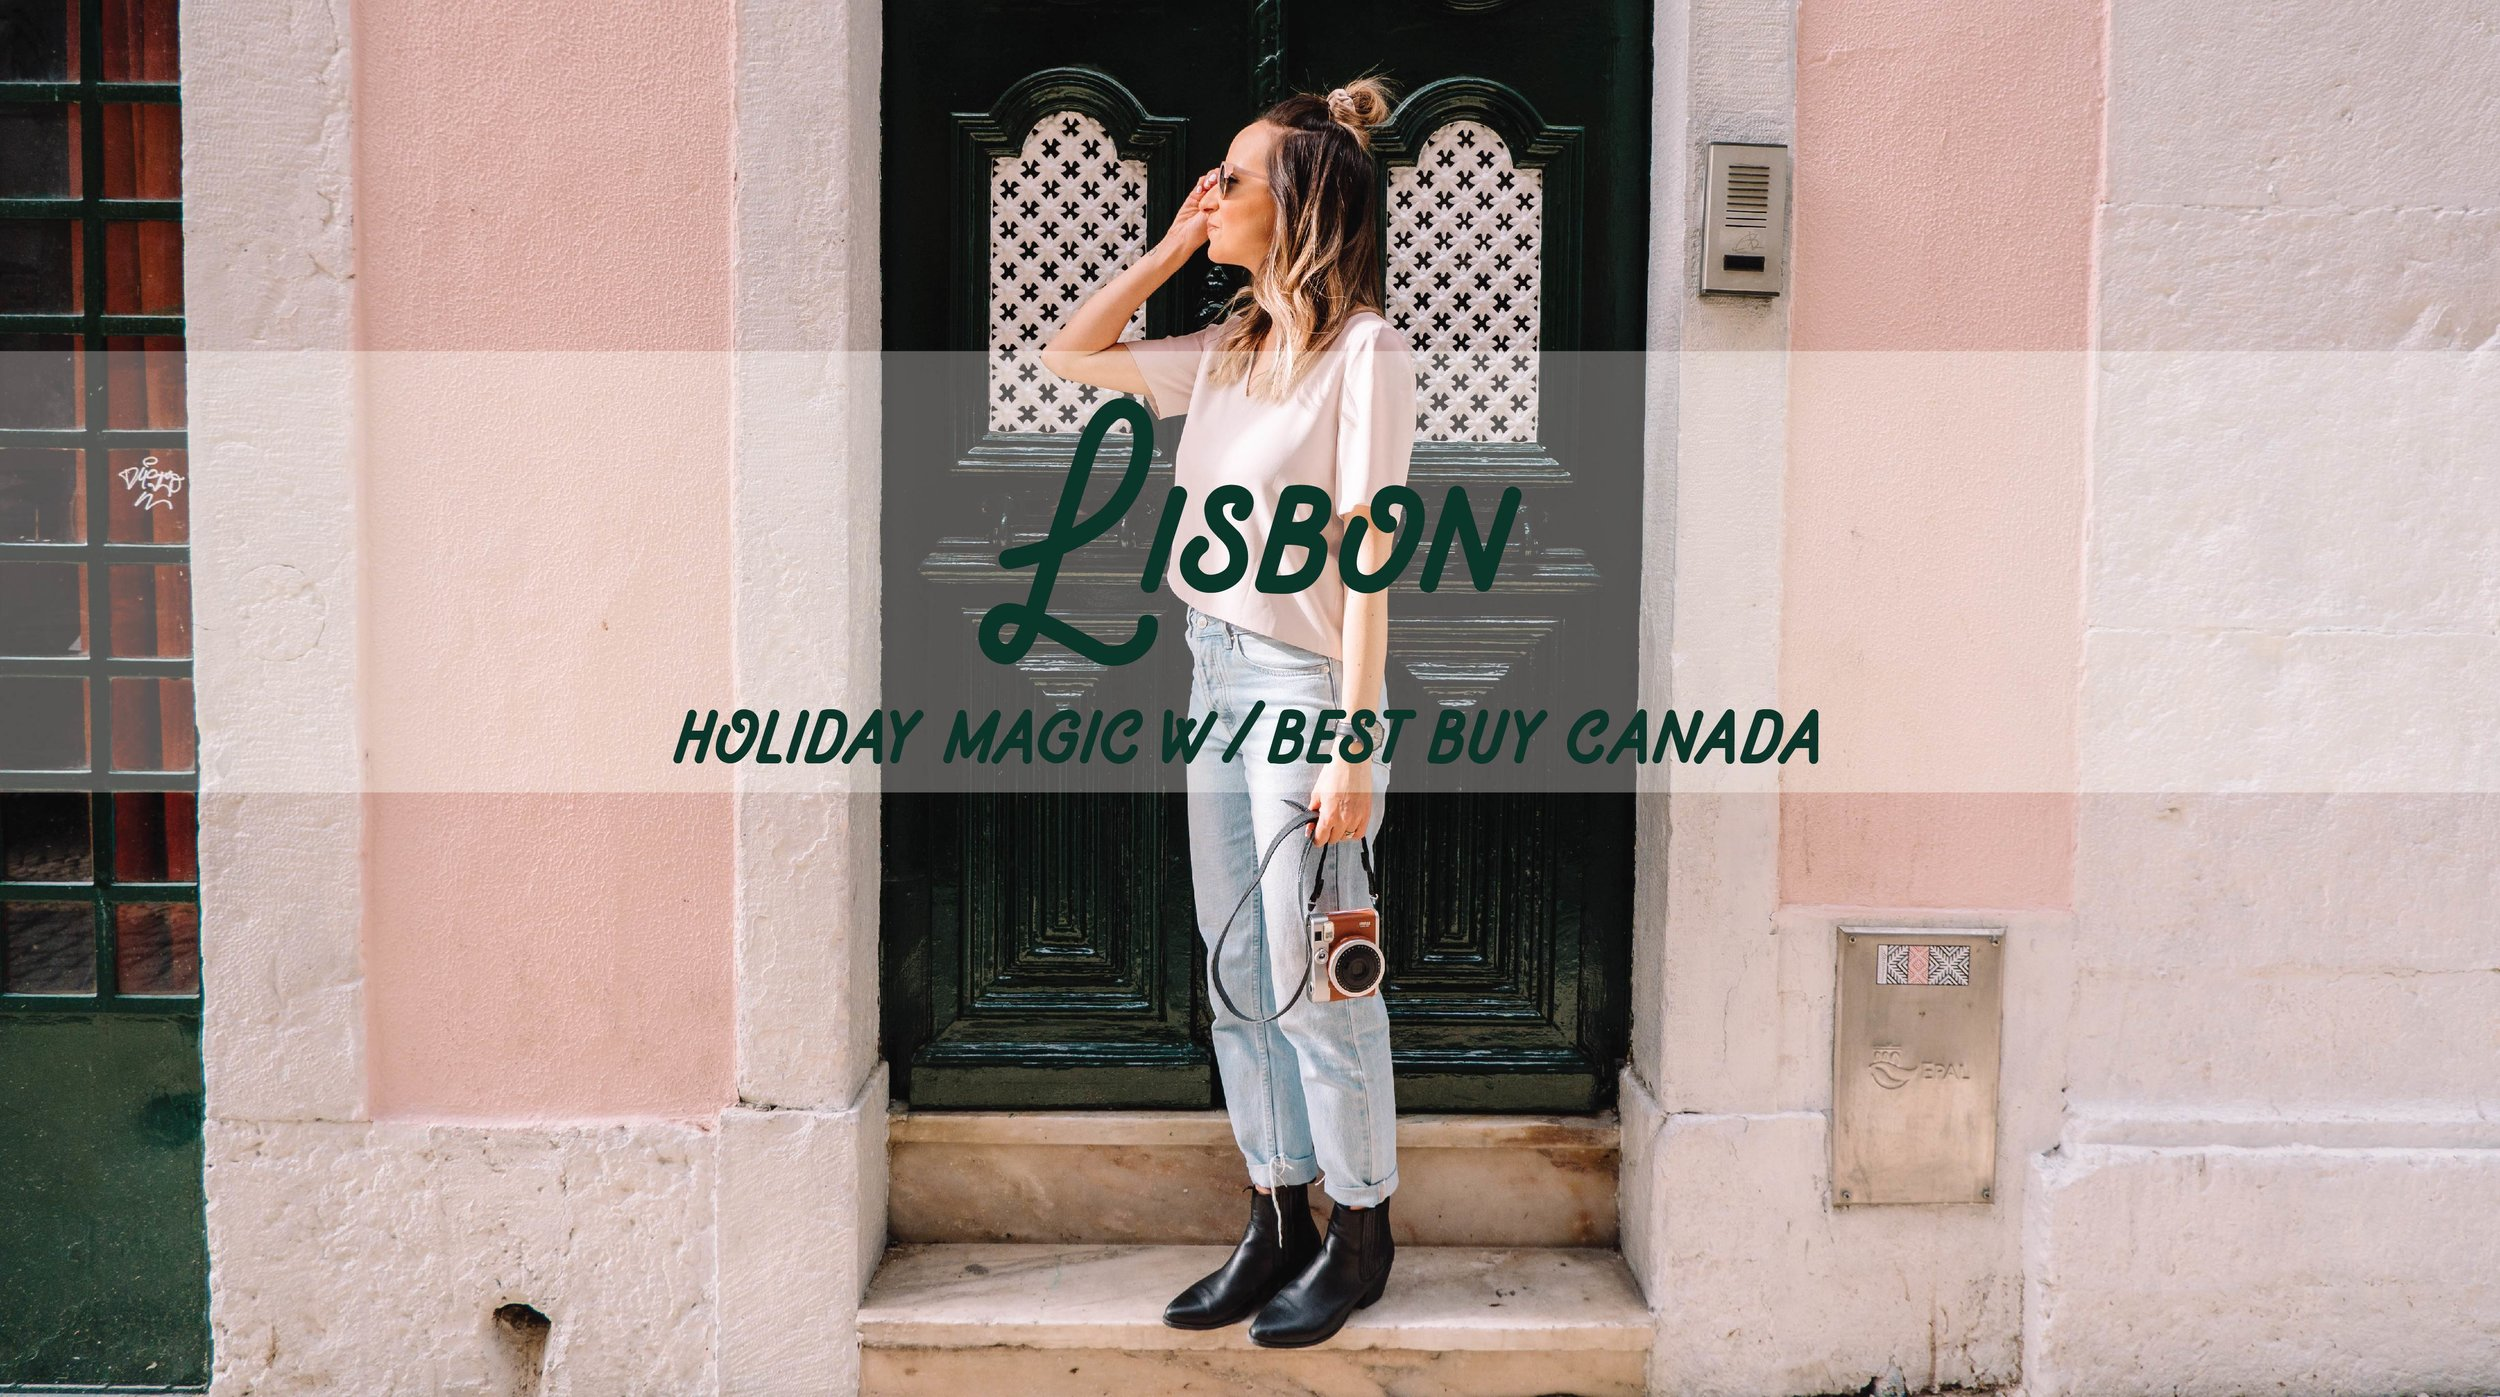 Lisbon Holiday Magic with Best Buy Canada